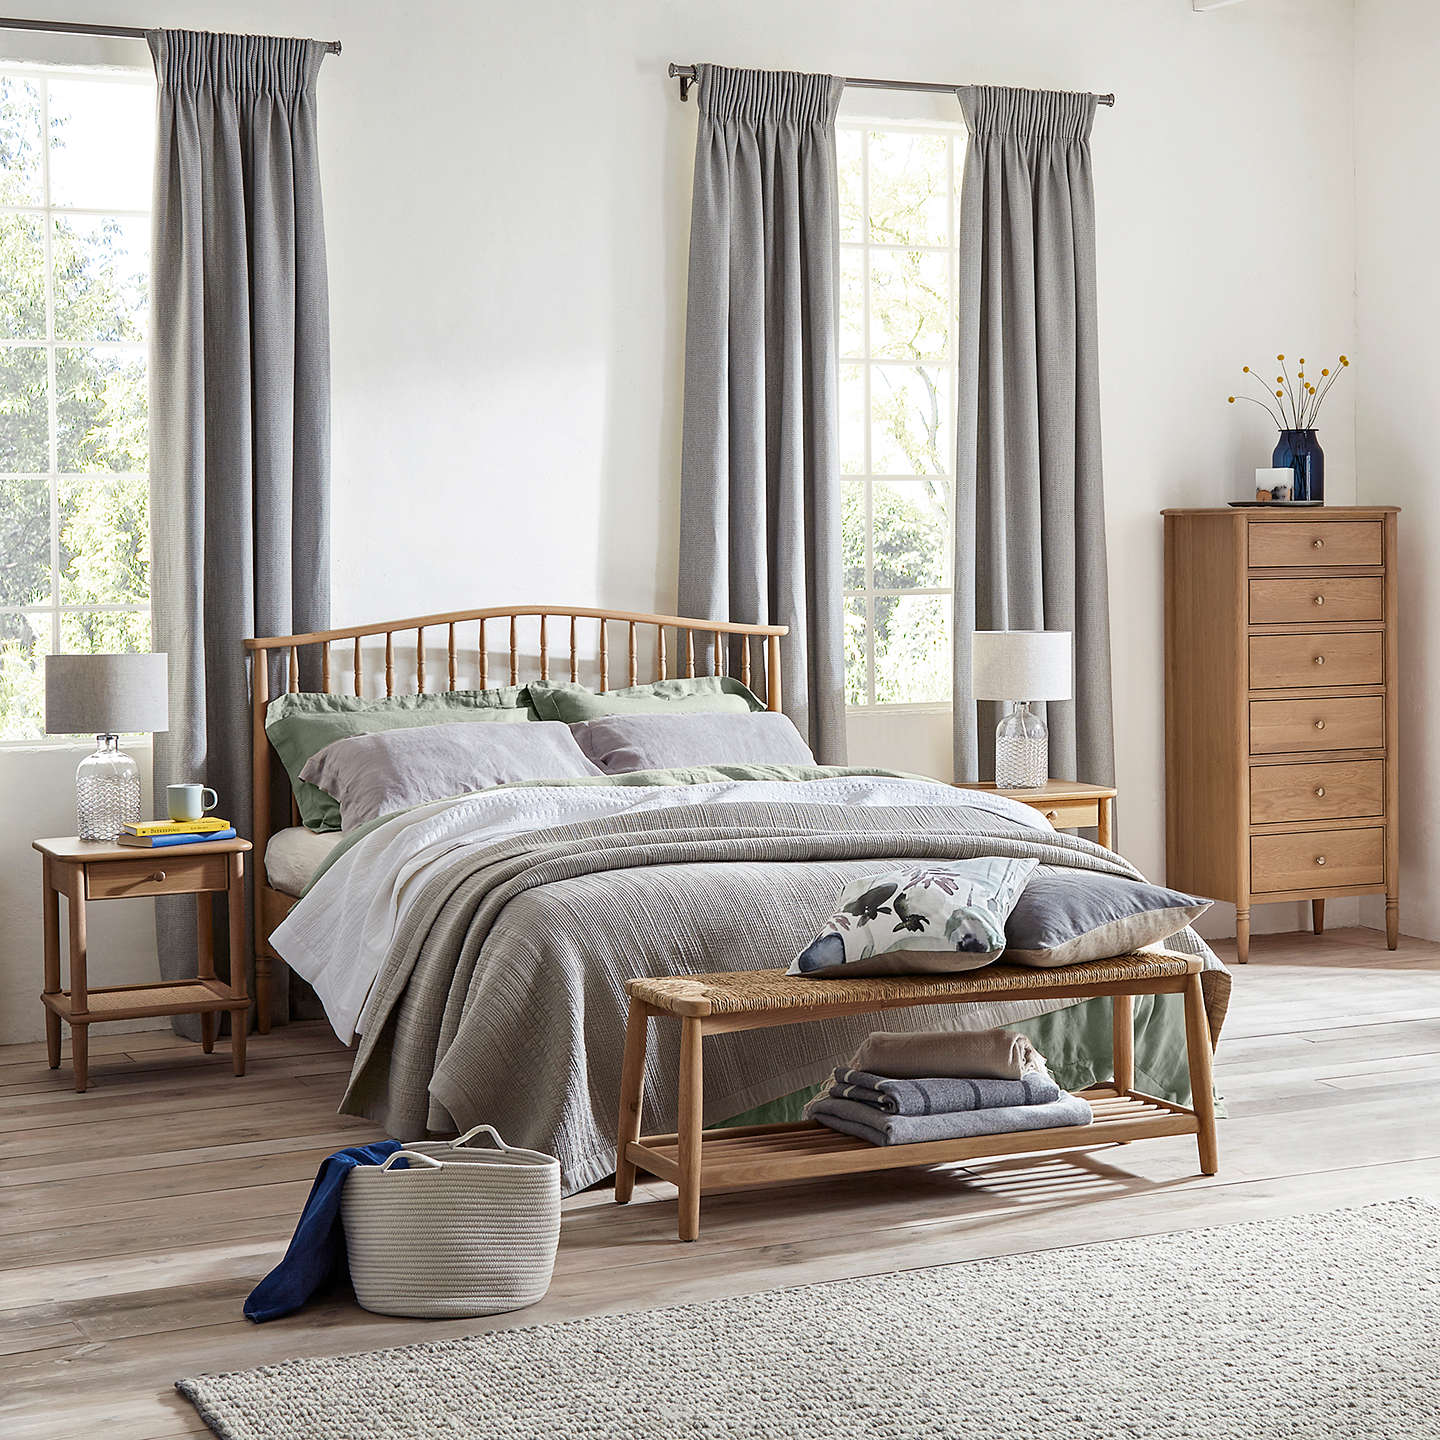 Croft collection bala spindle bed frame double at john lewis for John lewis chinese furniture